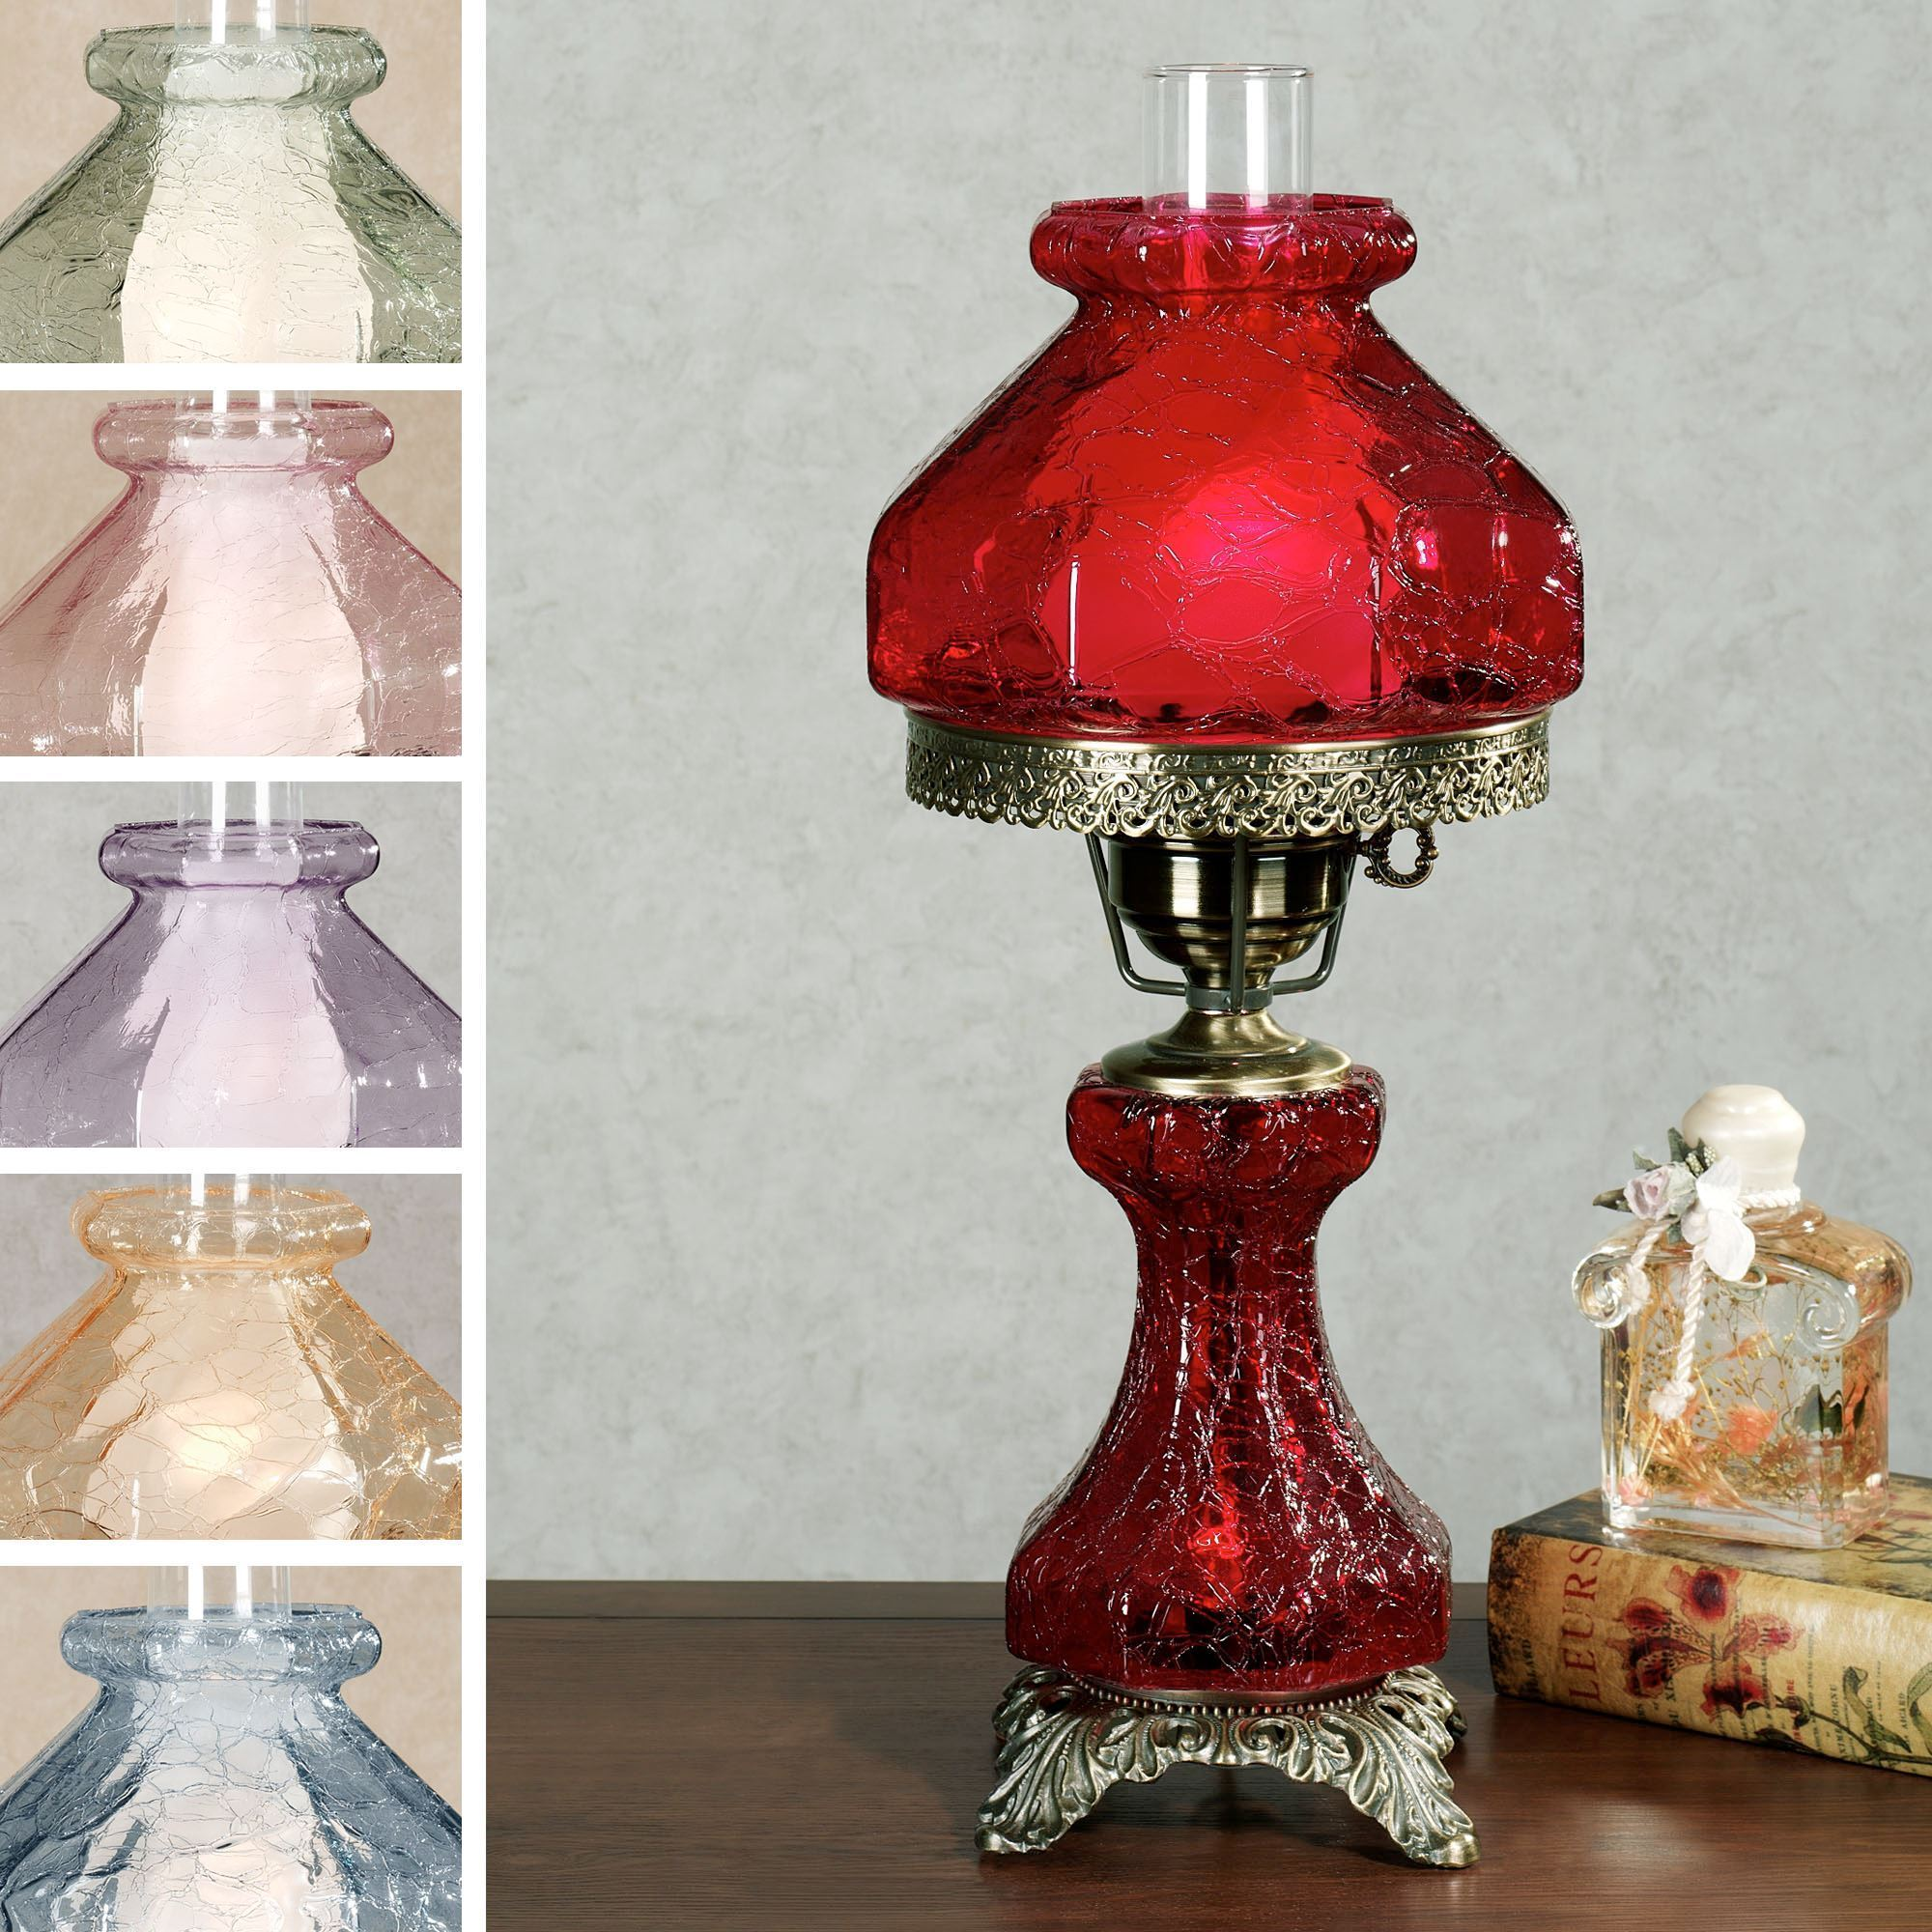 furniture novelty rustic table lamp decoration light straw braid small brayleigh handblown glass accent within decorative lamps lucite coffee tray target metal pier one wicker